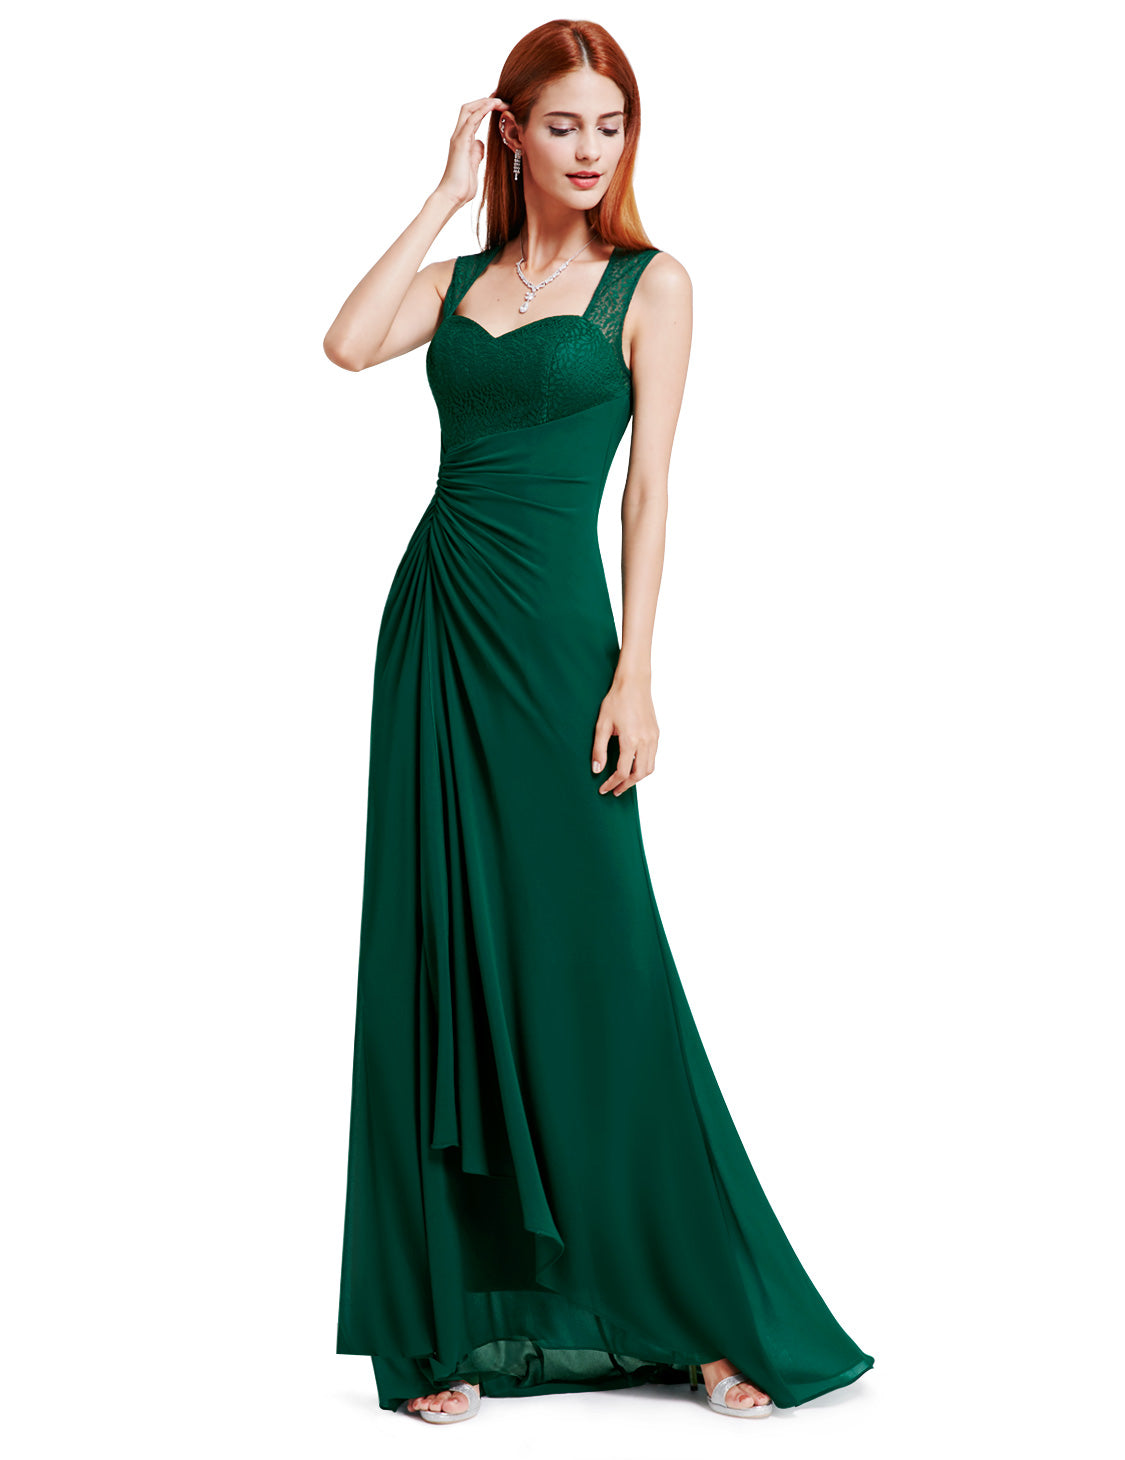 Obeige Elegant Green Sleeveless Long Evening Party Dress